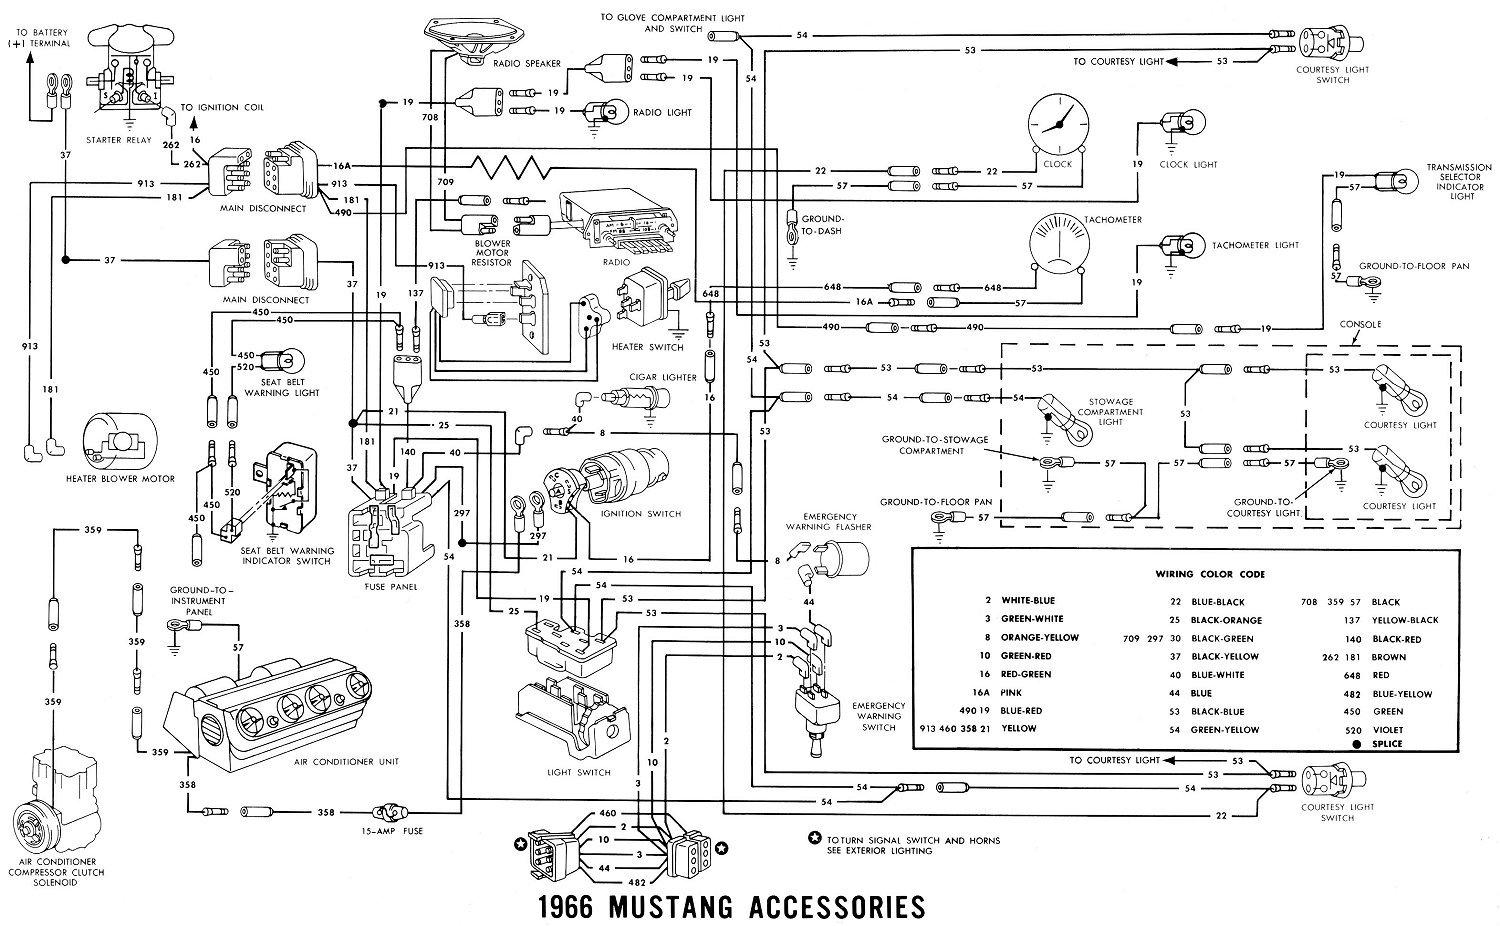 66acces1 1970 mustang wiring diagram pdf 1967 mustang wiring diagram pdf 1966 mustang wiring diagram pdf at alyssarenee.co